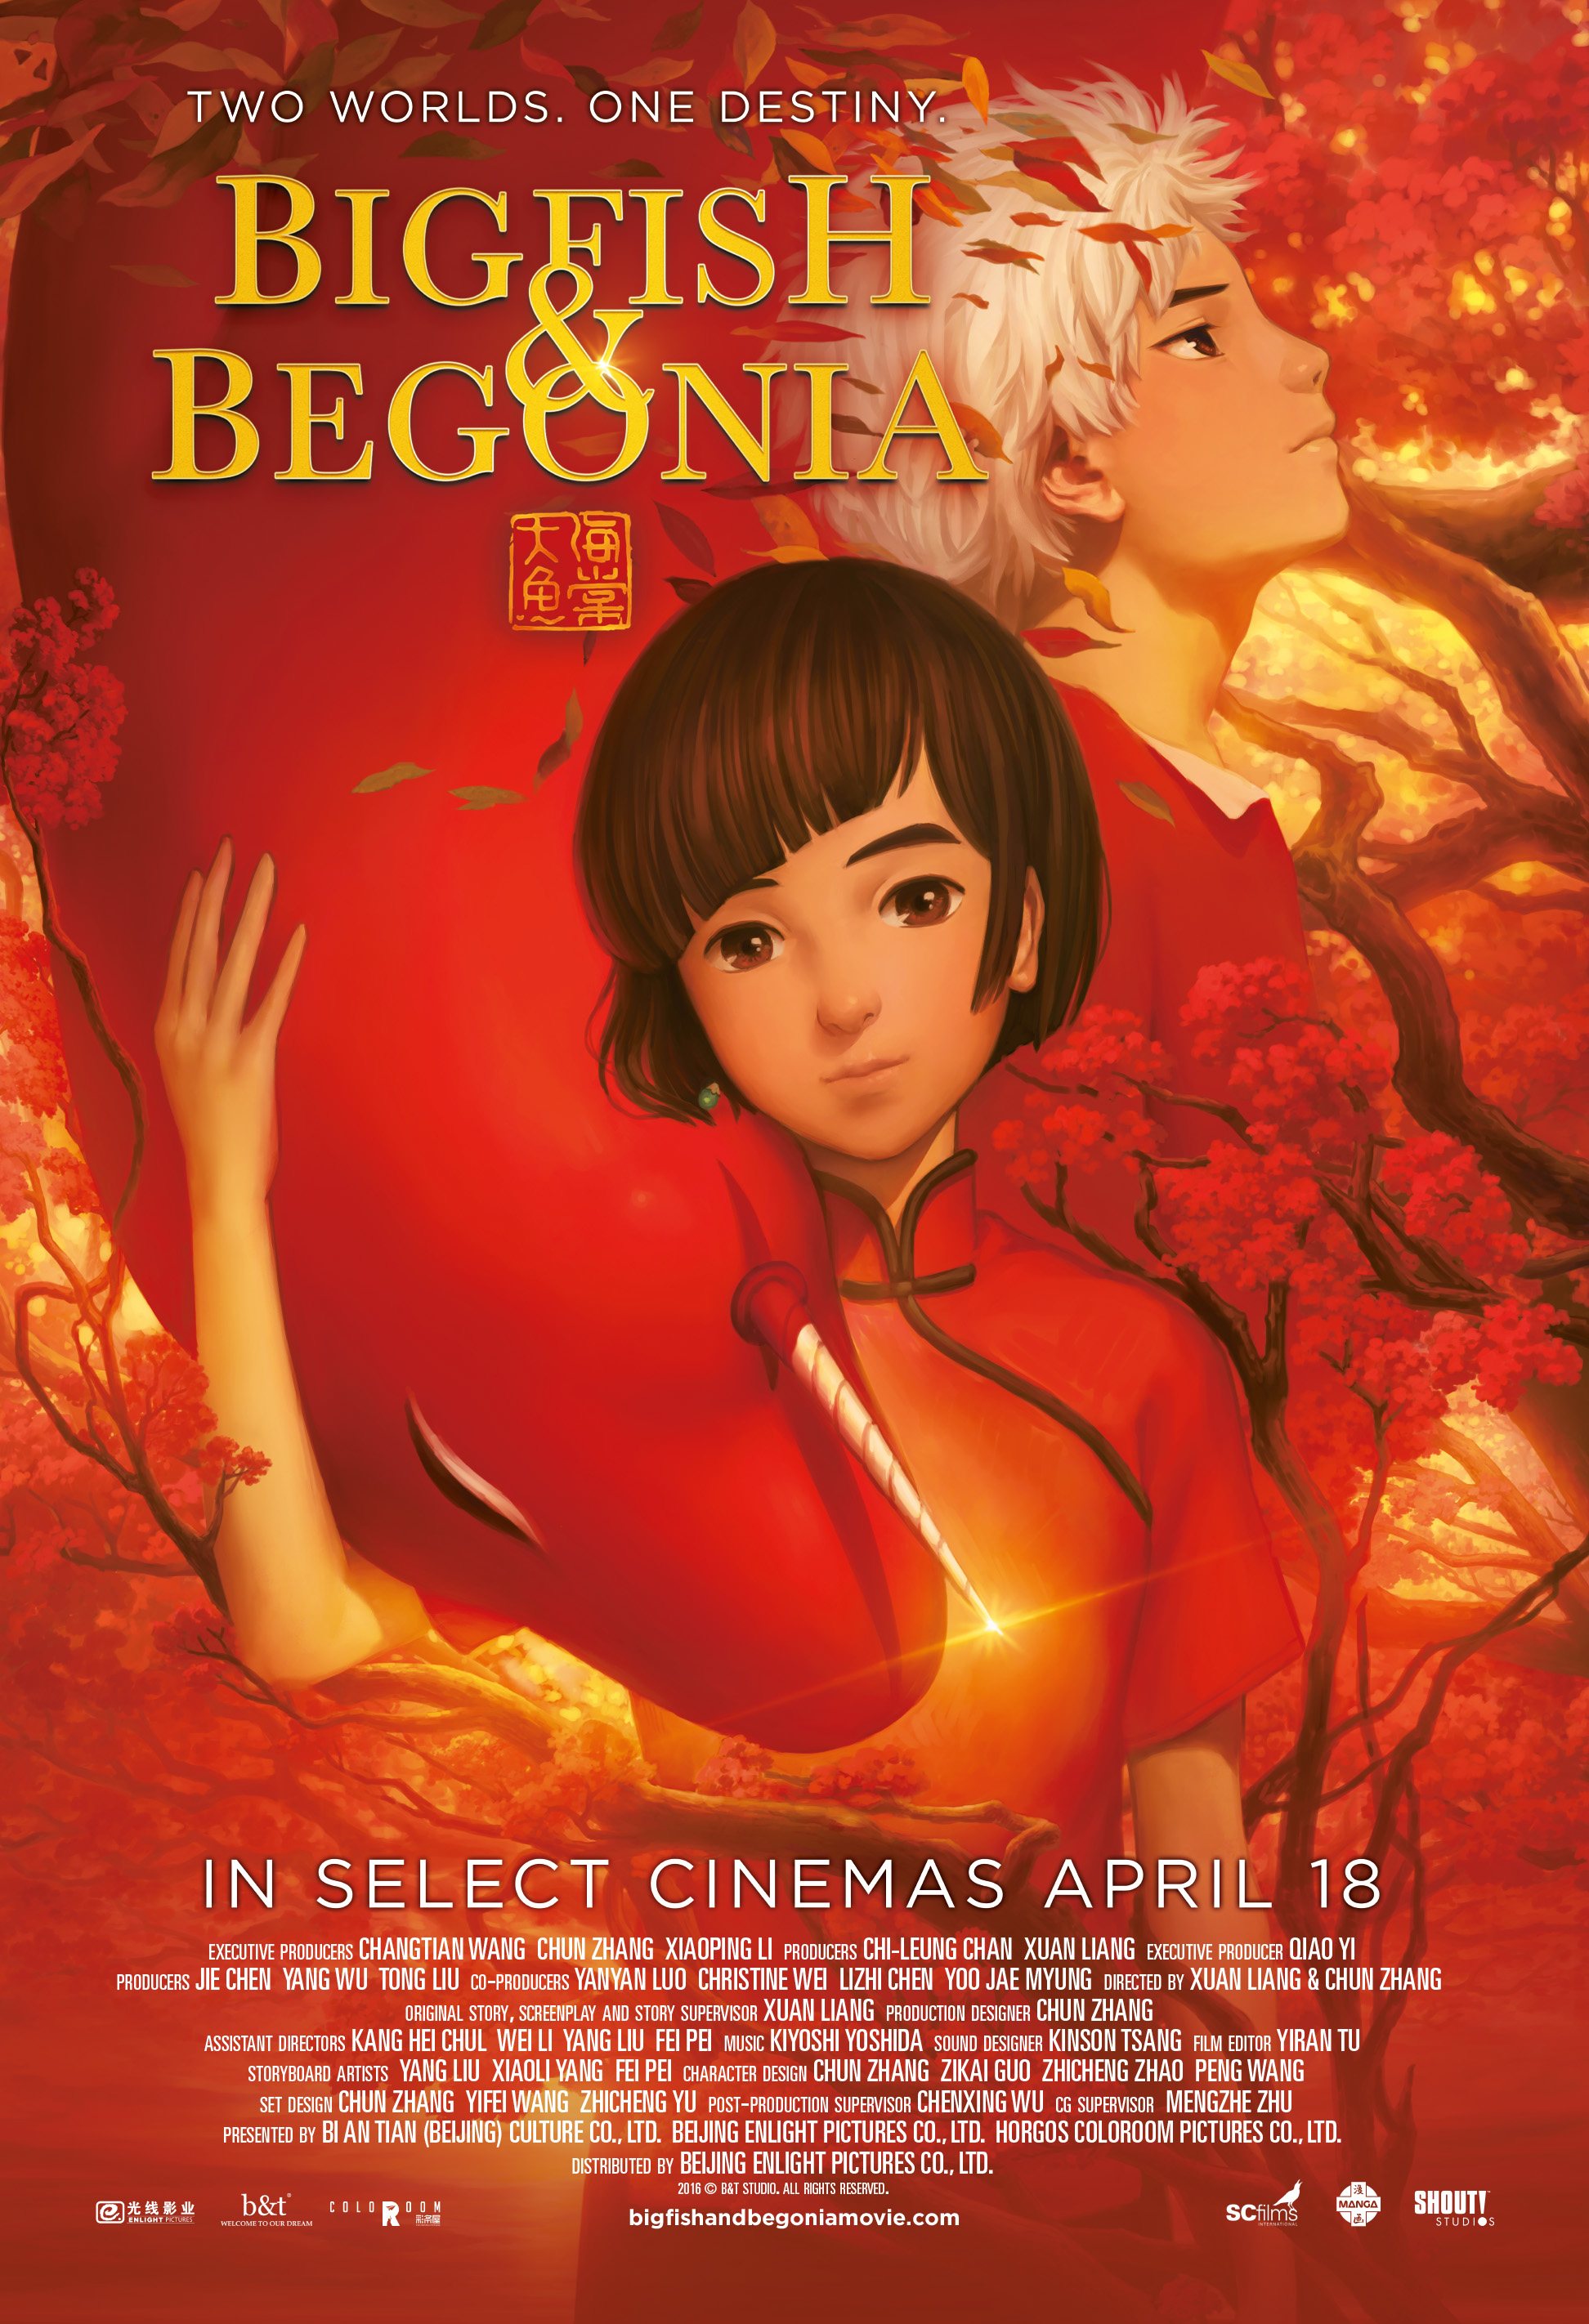 Big Fish & Begonia film review: a beautiful animation with visuals that sing